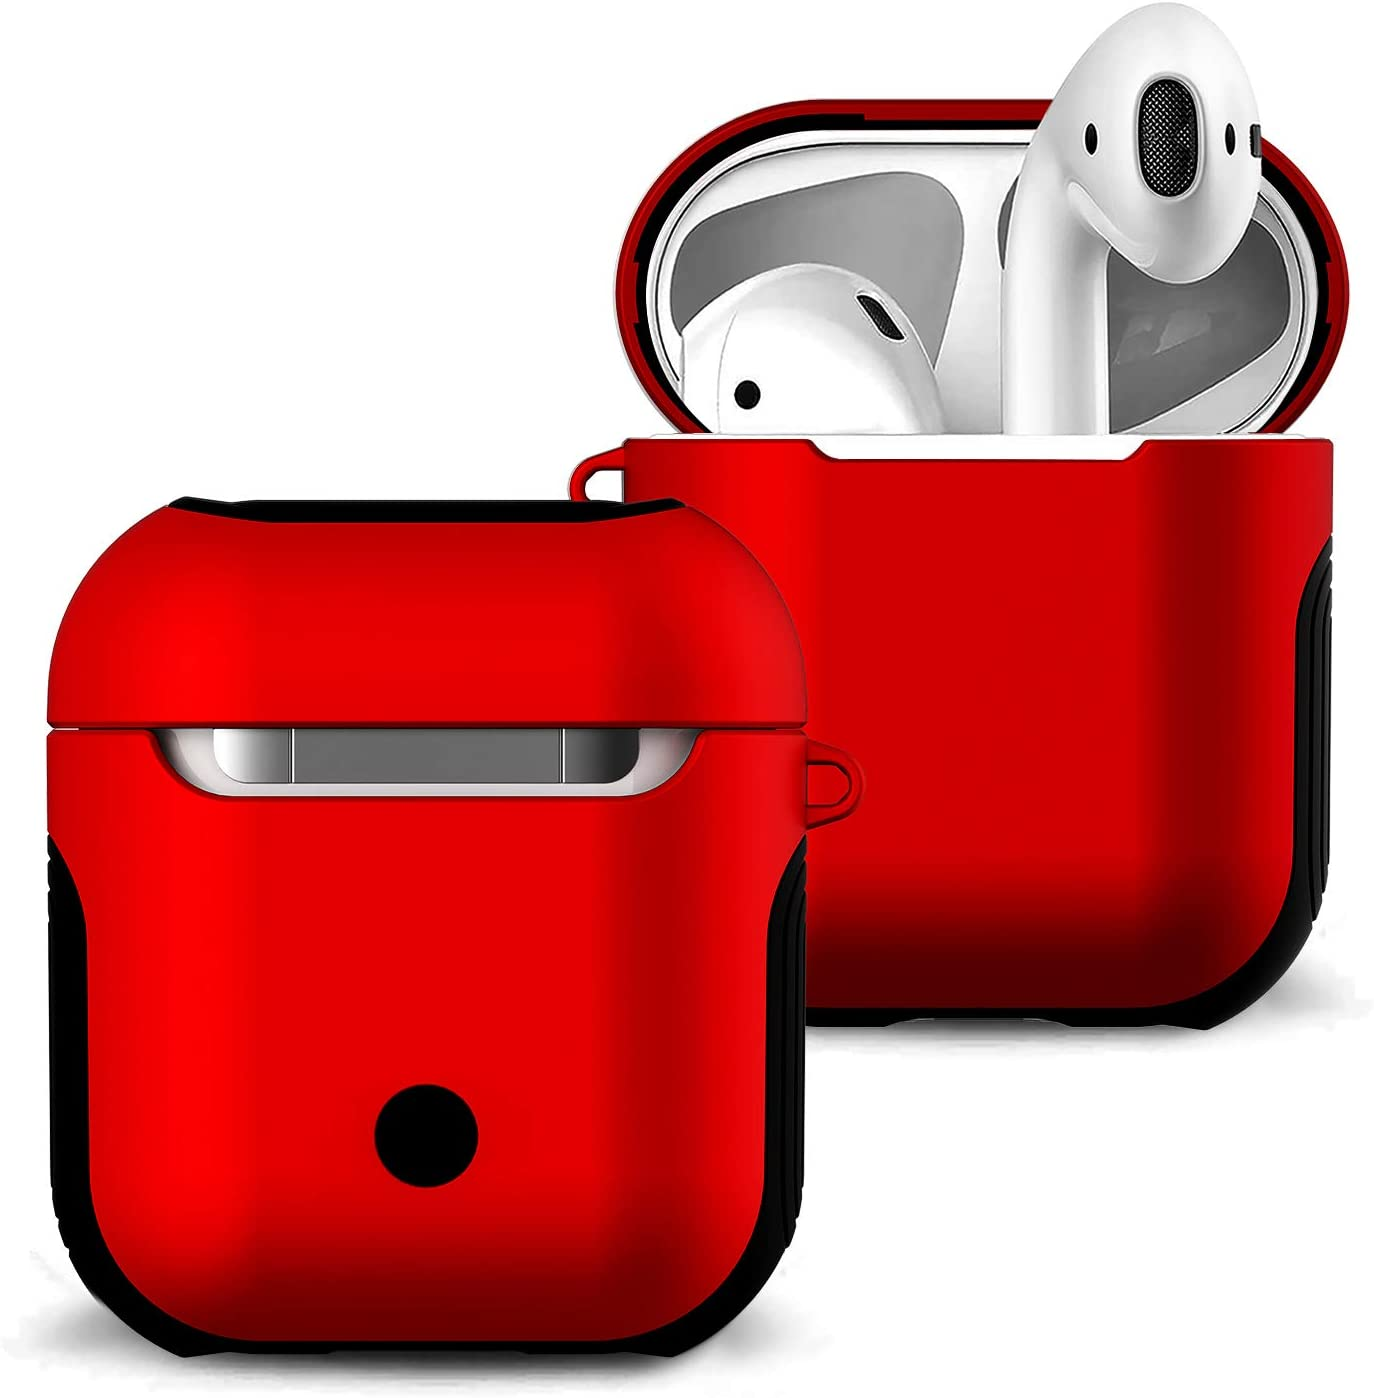 Airpods Case Cover and Skin - Romozi Airpod Skins is Silicone and Hard Cover Dual Layer Design, Heavy Duty Air Pods Case with Lanyard,Shockproof AirPod Covers for Apple Airpods Accessories(Red)